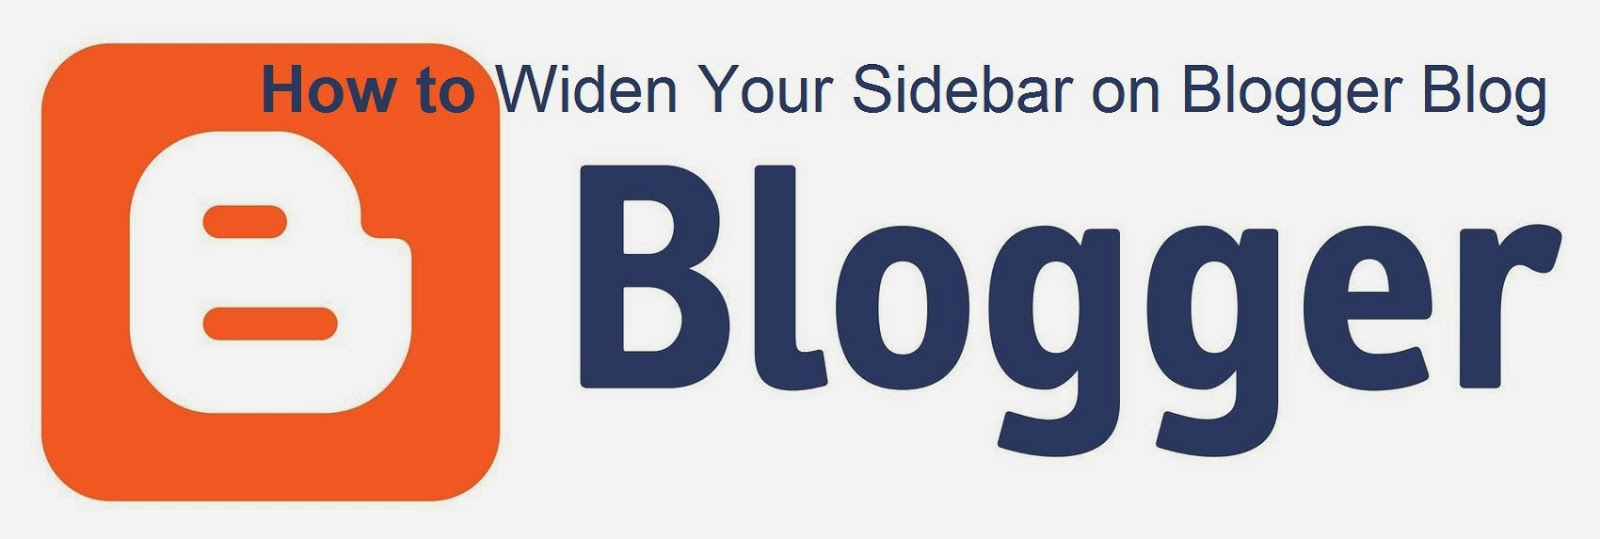 How to Widen Your Sidebar on Blogger Blog : eAskme